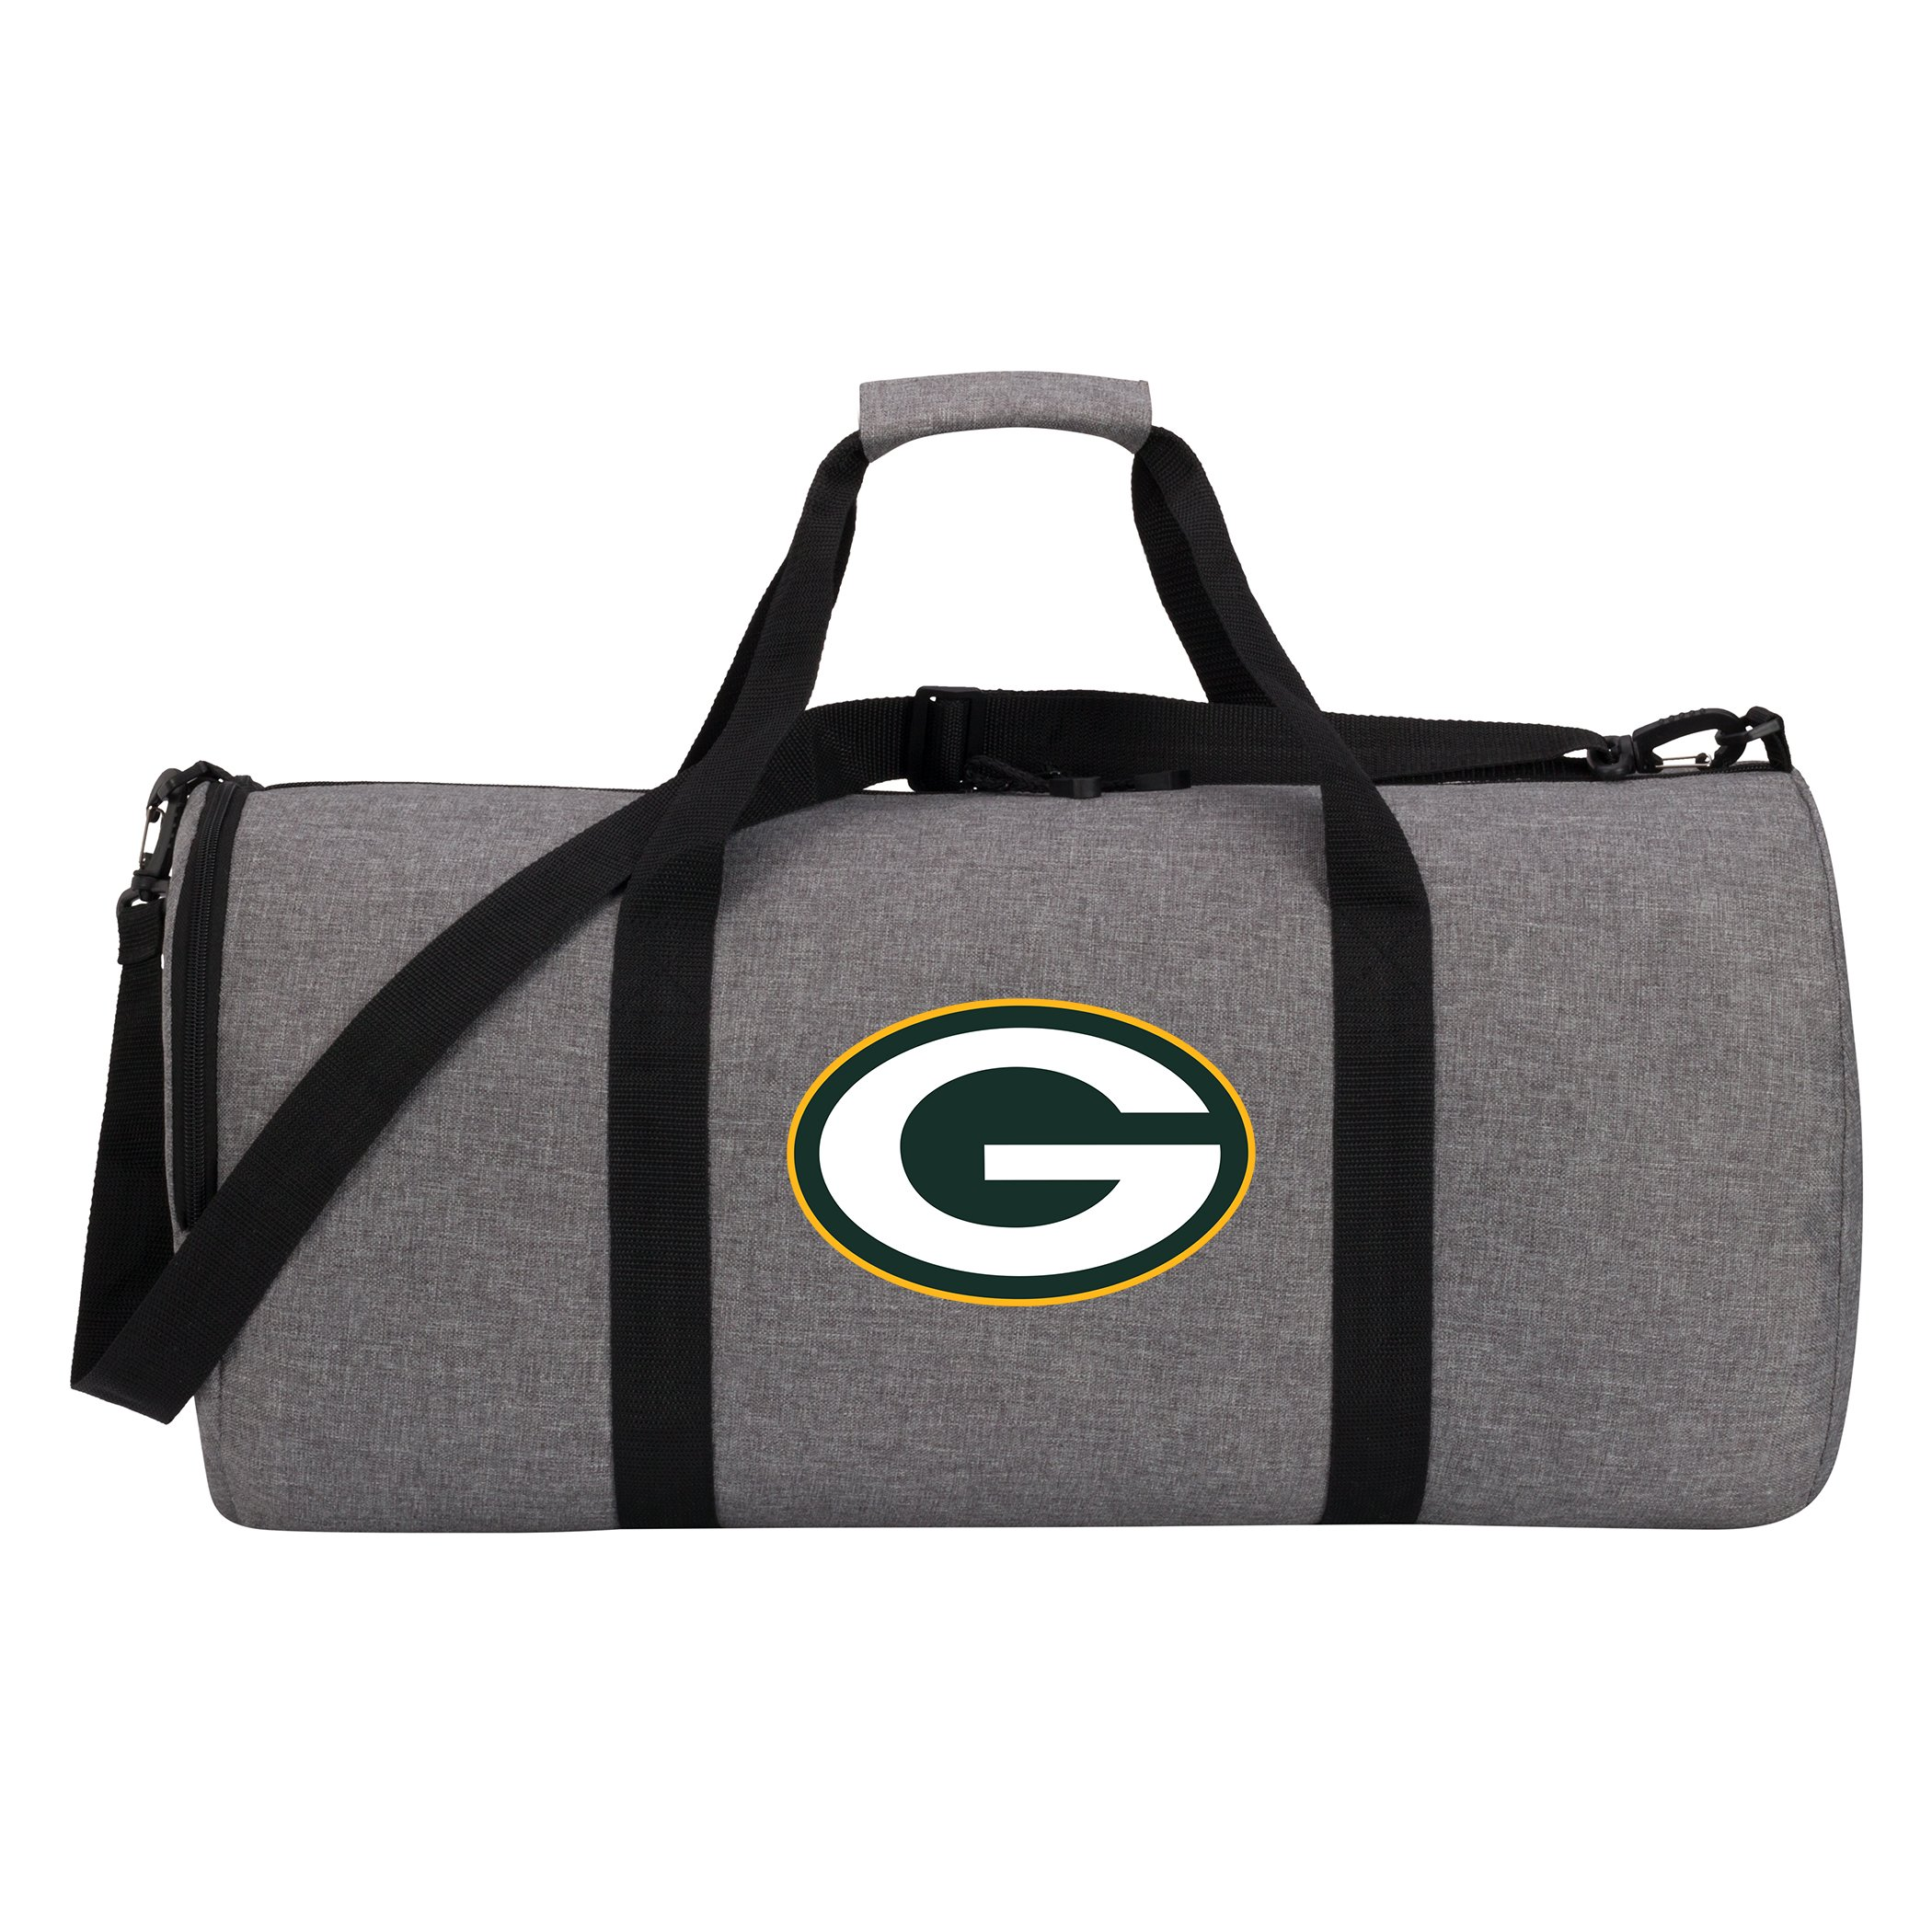 The Northwest Company NFL Green Bay Packers Duffel Bag, One Size, Gray